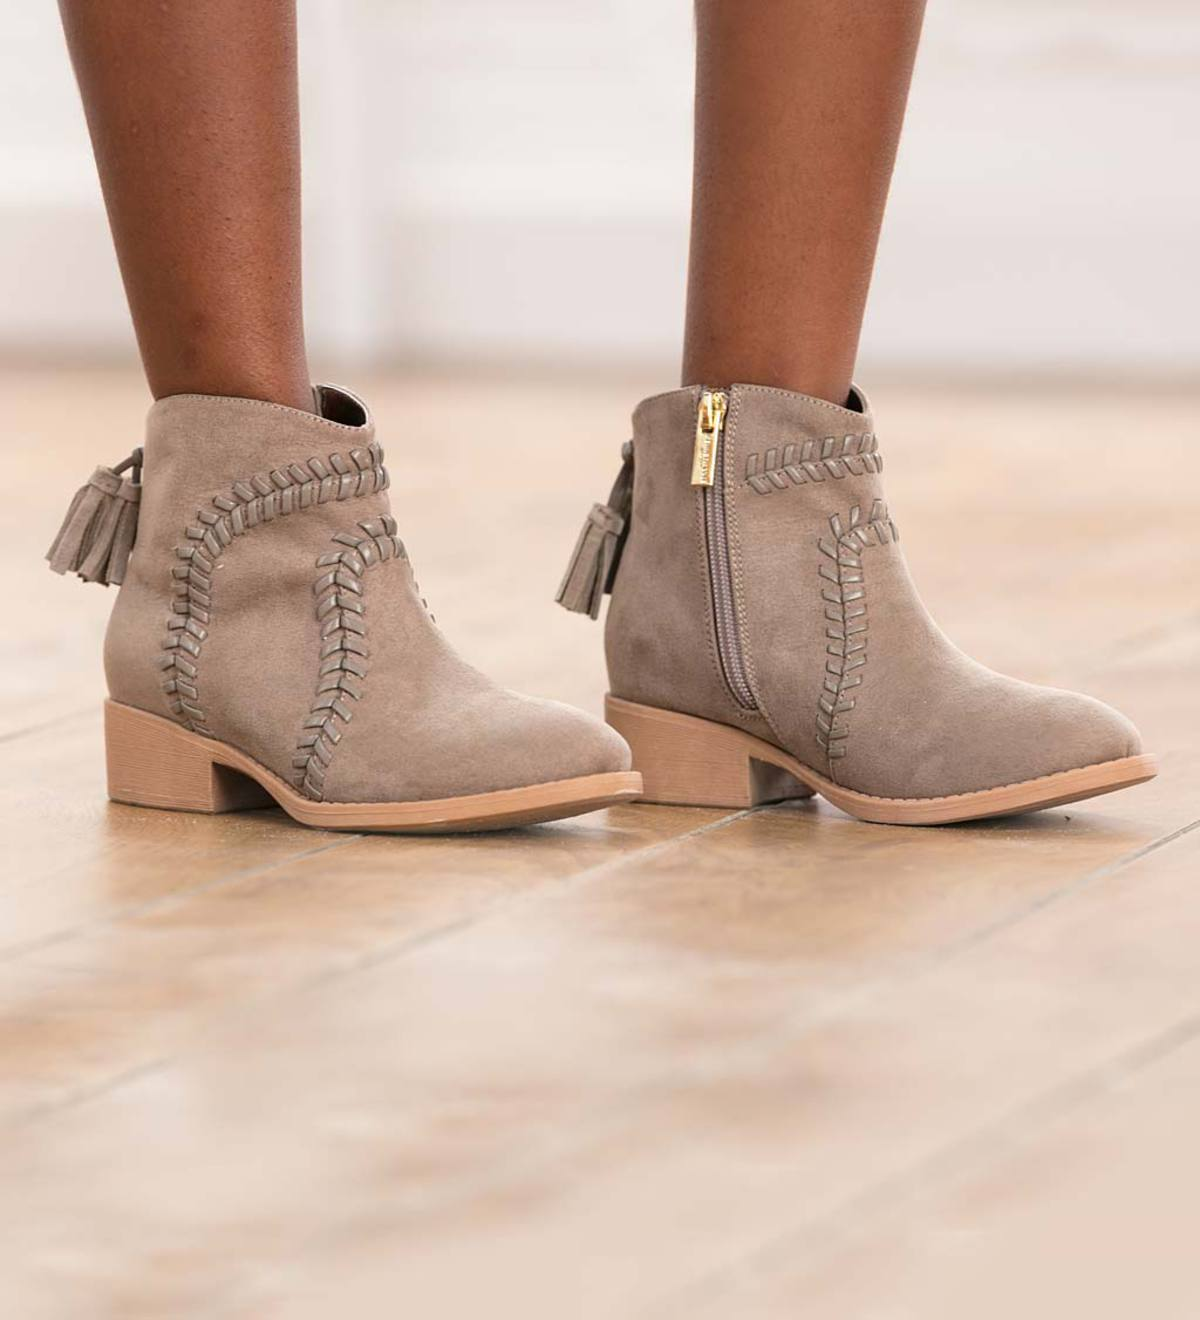 Stitched Suede Bootie - Sand - Size 3